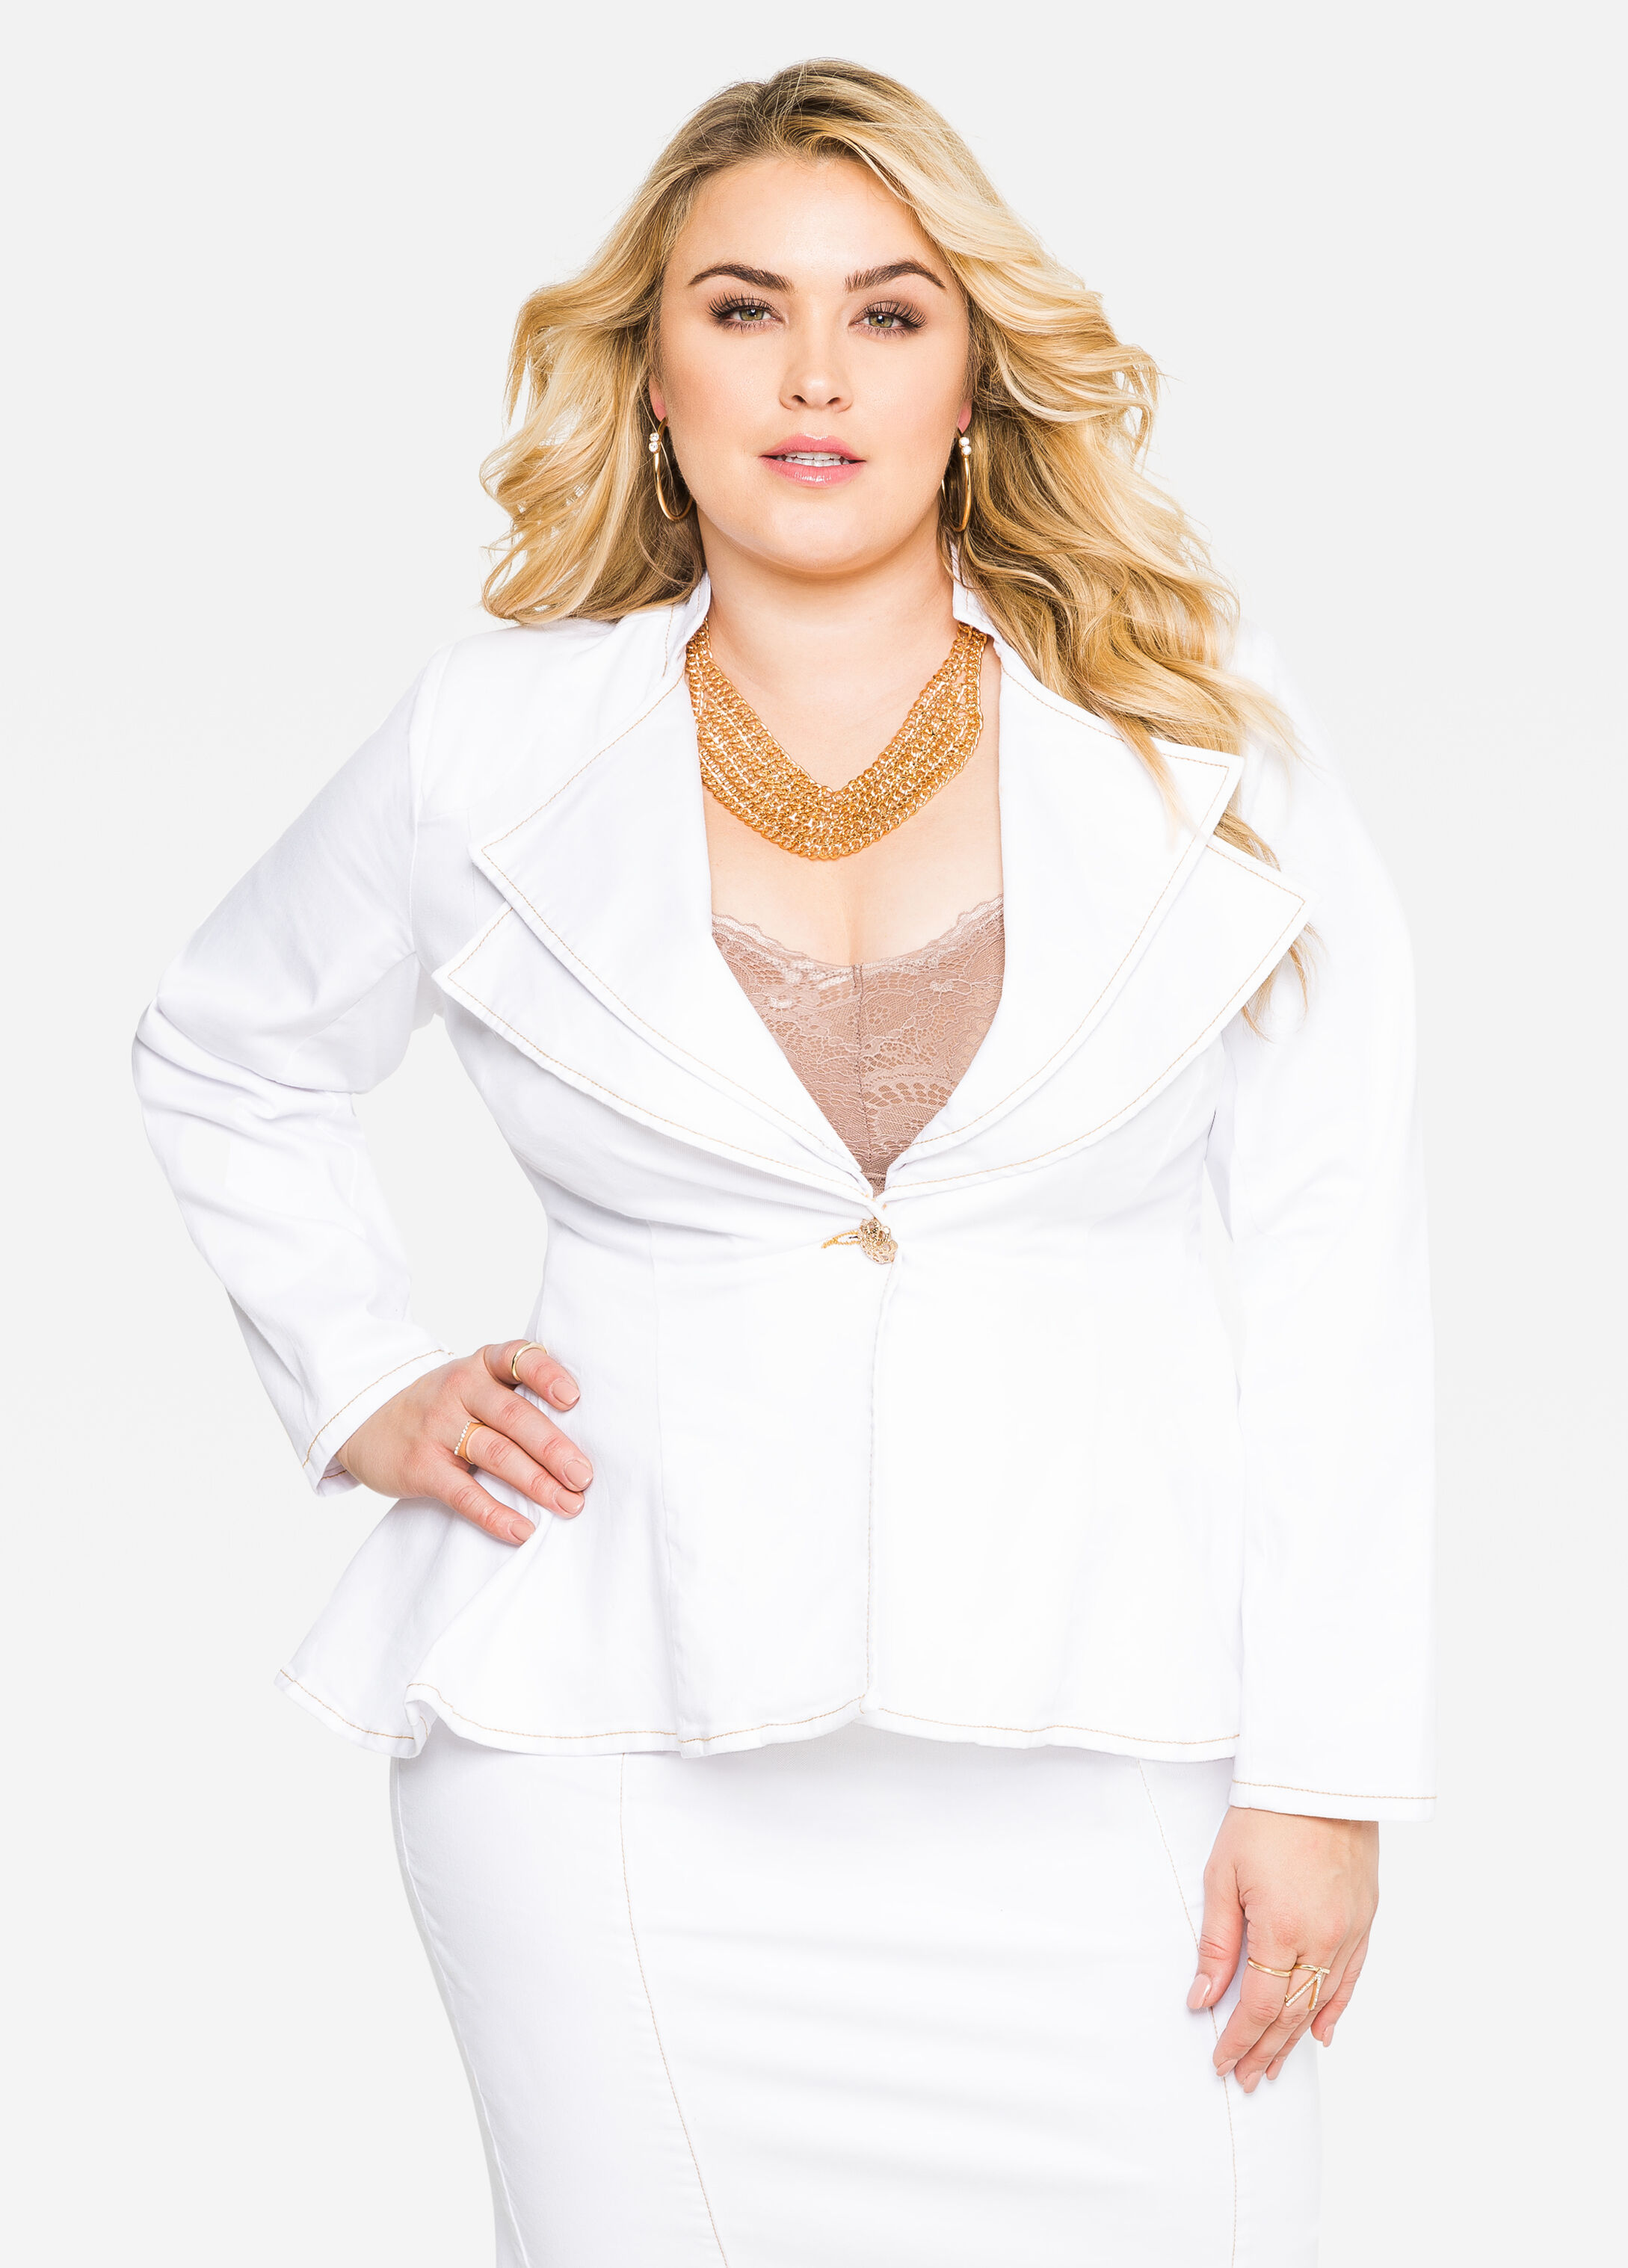 PEPLUM DBL COLLAR GOLD BTN JAC  - Color: White, Size: 12